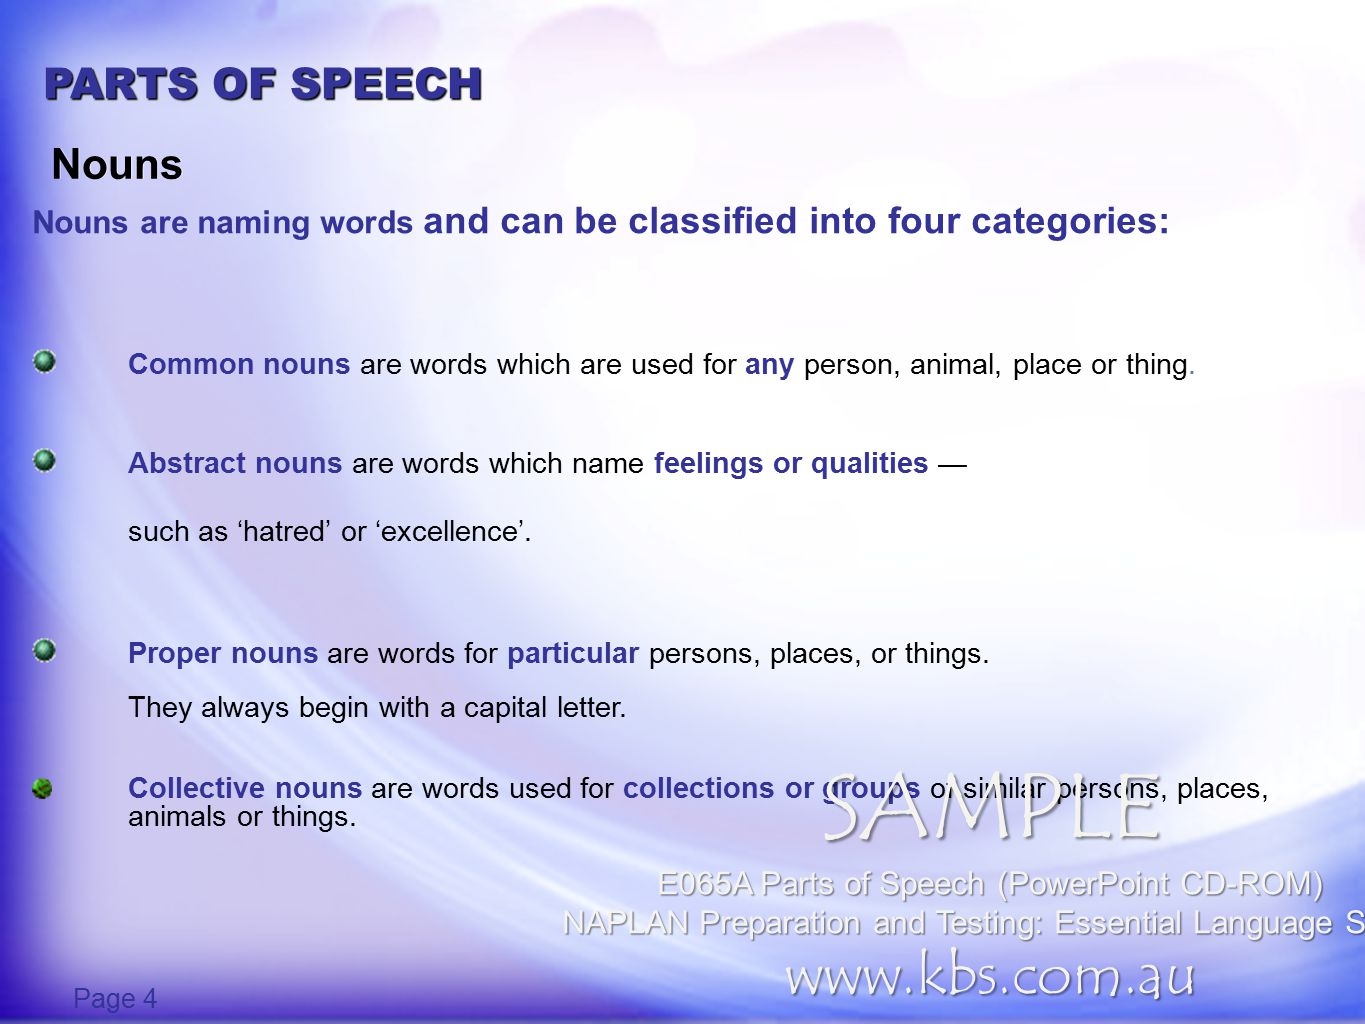 PARTS OF SPEECH Create nouns Page 5 -ary -ation -ence -ance -ion -tion -ment VERBNOUN VERBNOUN Using suffixes from the box, form nouns from the verbs below.